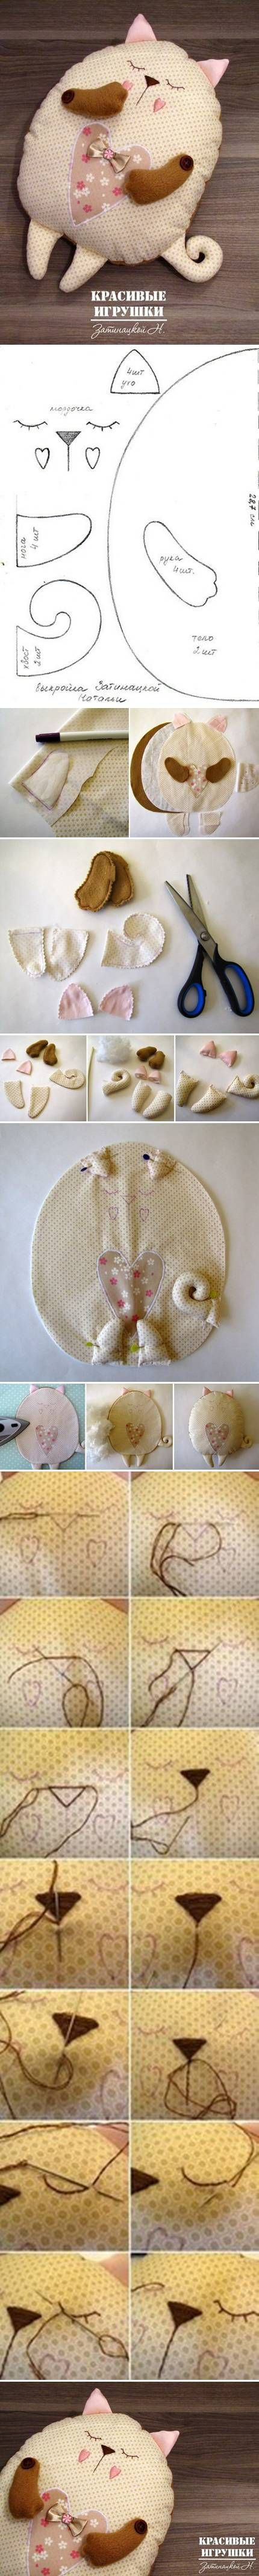 DIY Soft Sew Fabric Cat DIY Projects